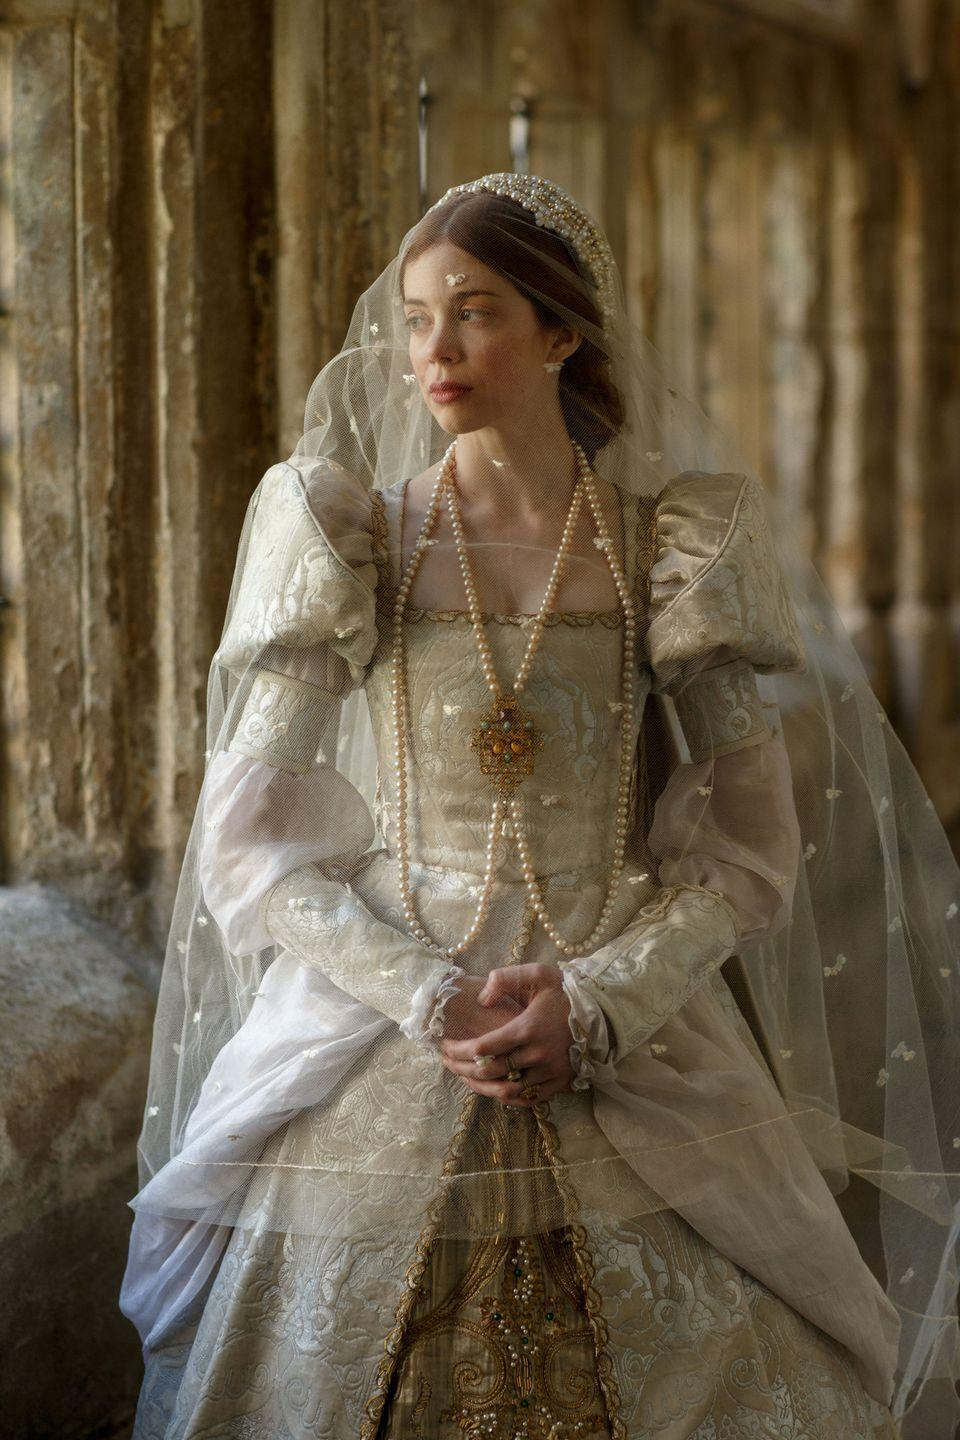 """<p>If you're already subscribed to Starz, may we suggest checking out <em><a href=""""https://www.townandcountrymag.com/leisure/arts-and-culture/a27243818/how-to-watch-the-spanish-princess/"""" rel=""""nofollow noopener"""" target=""""_blank"""" data-ylk=""""slk:The Spanish Princess"""" class=""""link rapid-noclick-resp"""">The Spanish Princess</a></em>? The beautifully-shot series tells the story of King Henry VIII, but <a href=""""https://www.townandcountrymag.com/leisure/arts-and-culture/a27431875/spanish-princess-charlotte-hope-catherine-of-aragon-interview/"""" rel=""""nofollow noopener"""" target=""""_blank"""" data-ylk=""""slk:from the perspective of his first wife, Catherine of Aragon"""" class=""""link rapid-noclick-resp"""">from the perspective of his first wife, Catherine of Aragon</a>. Come for the historical drama, stay for a hunky version of King Hal (pre-gout, that is). </p><p><a class=""""link rapid-noclick-resp"""" href=""""https://www.amazon.com/The-Spanish-Princess-Catherine/dp/B07Q7W4FCS?tag=syn-yahoo-20&ascsubtag=%5Bartid%7C10067.g.28484672%5Bsrc%7Cyahoo-us"""" rel=""""nofollow noopener"""" target=""""_blank"""" data-ylk=""""slk:Watch Now"""">Watch Now</a></p>"""